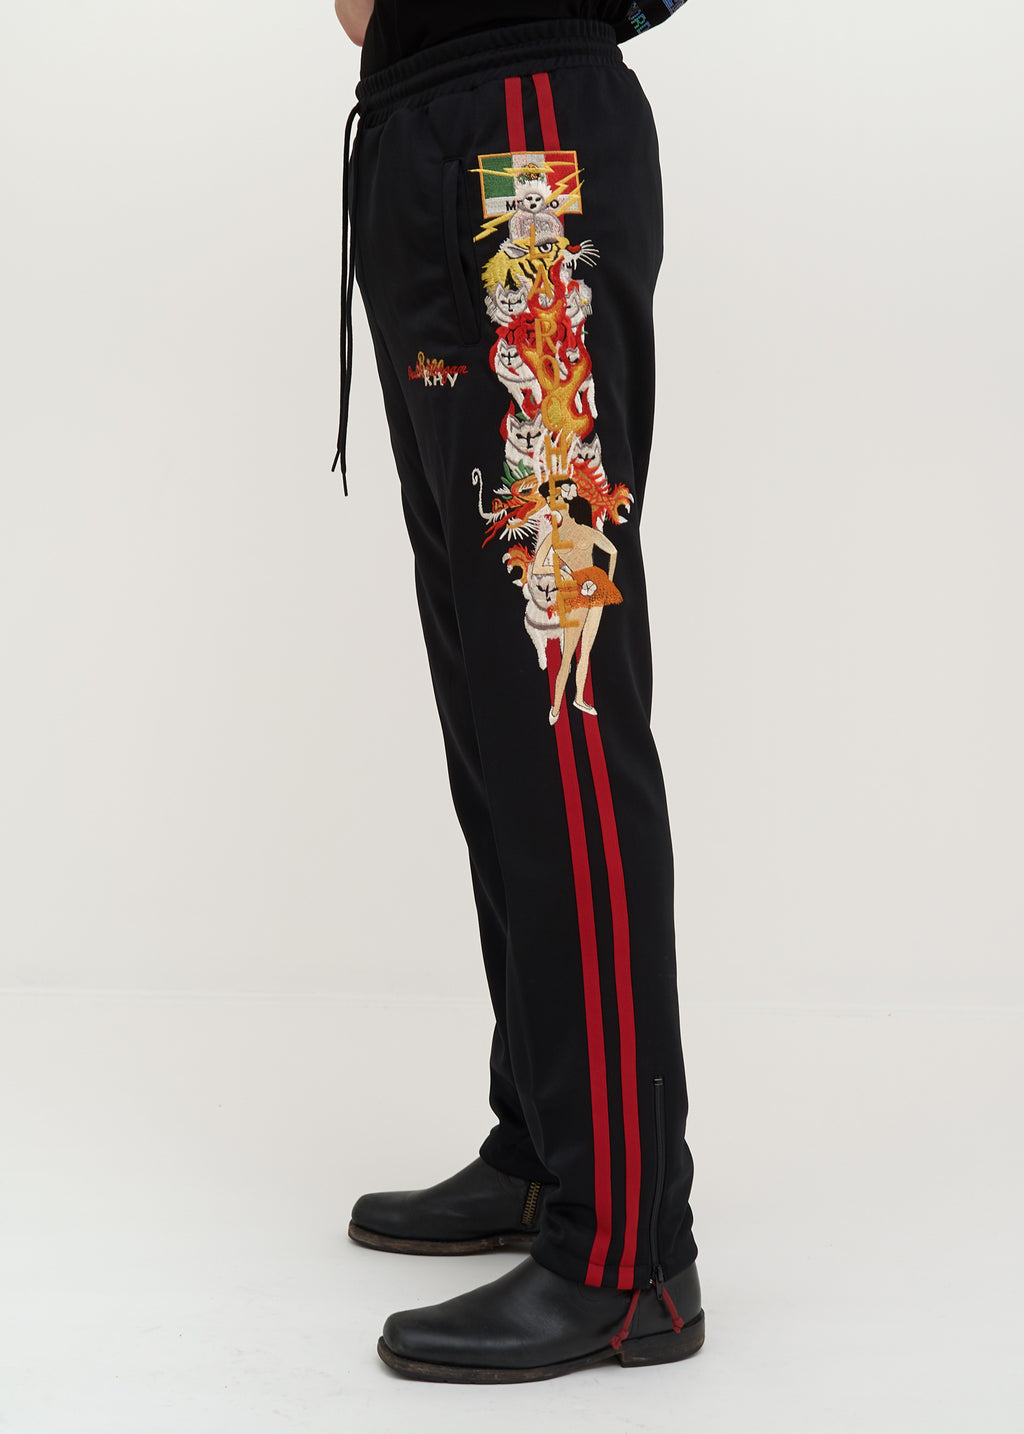 Doublet, Black Chaos Embroidery Track Pants, 017 Shop